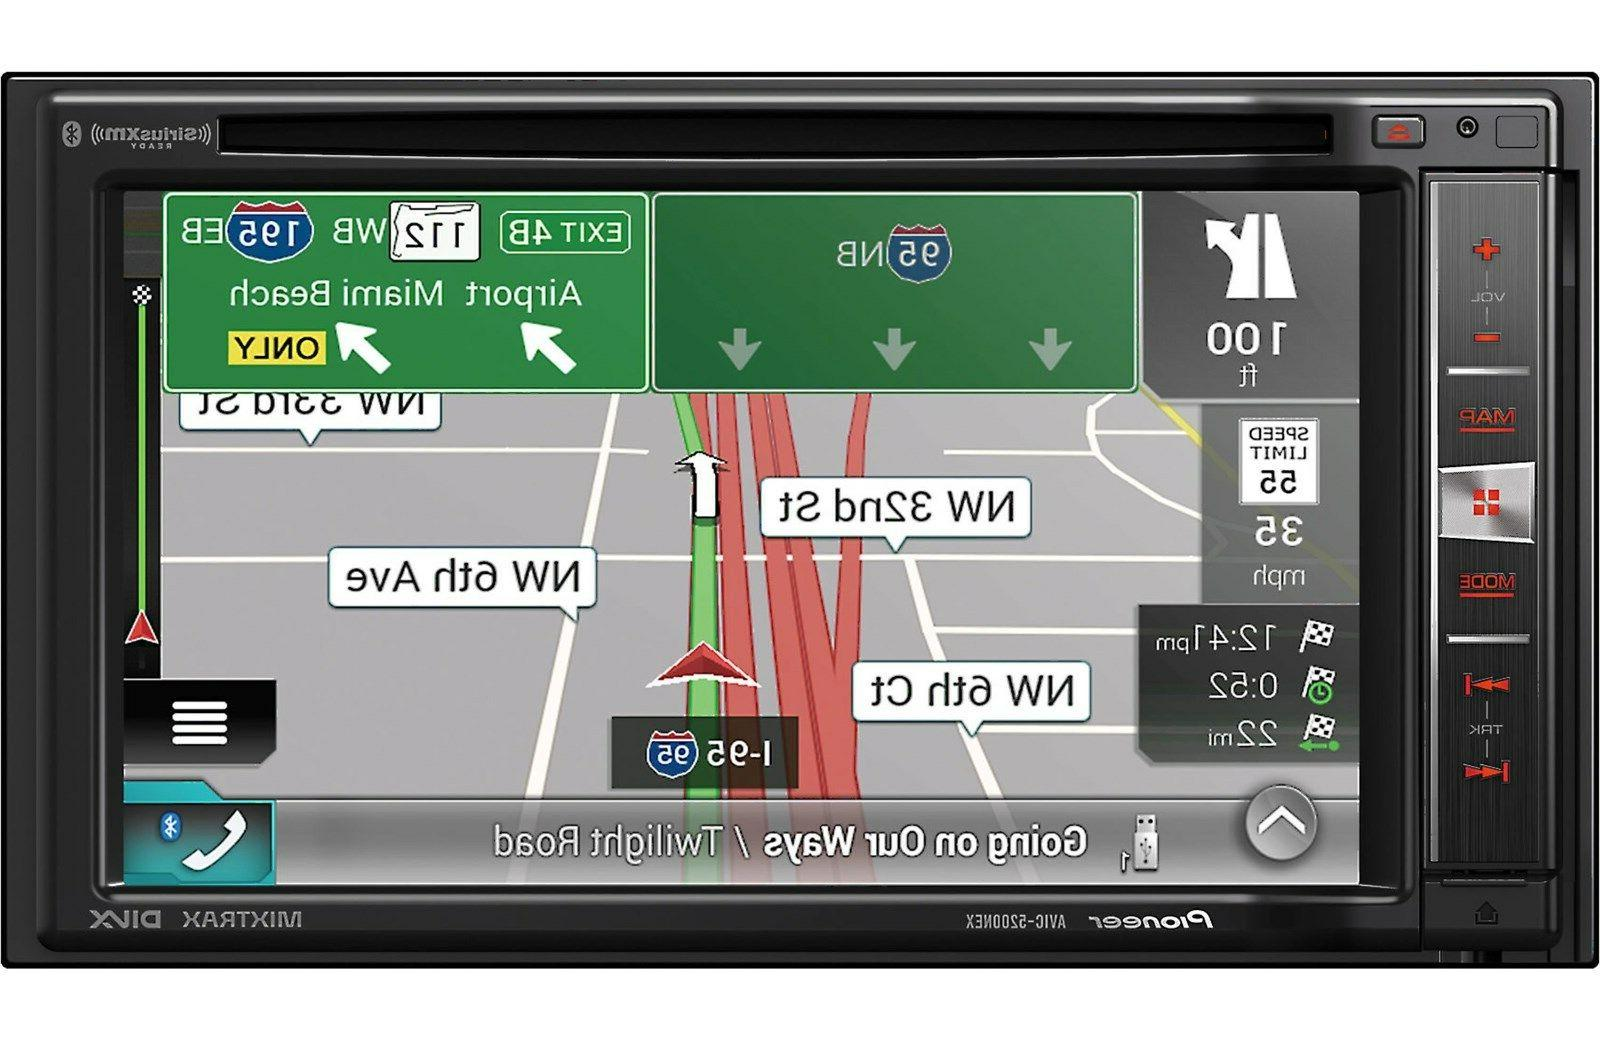 Pioneer GPS 6.2 Touchscreen Video Player, CD/DVD Player Voice Speed Assist, Turn-by-turn - Bluetooth - Preloaded Maps - WVGA